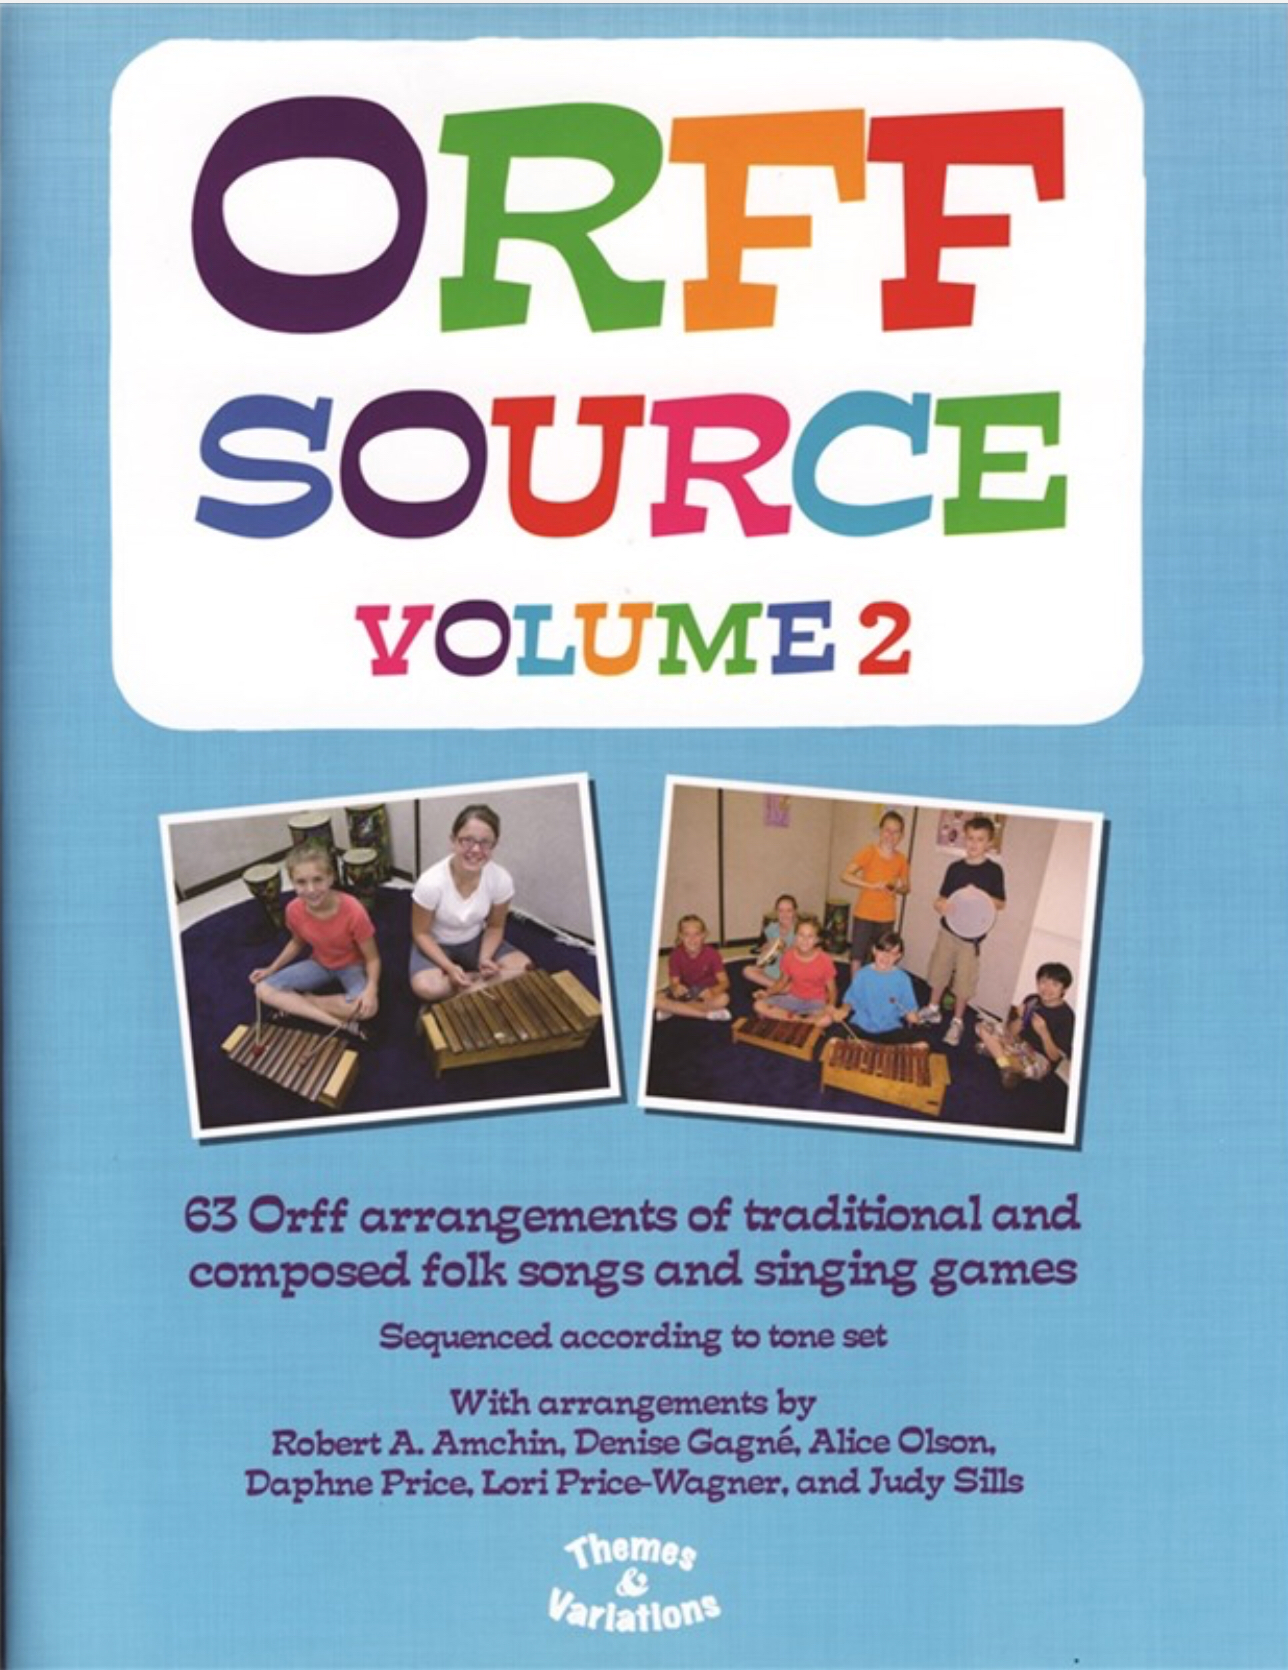 The Orff Source Vol 2 by Denise Gagne